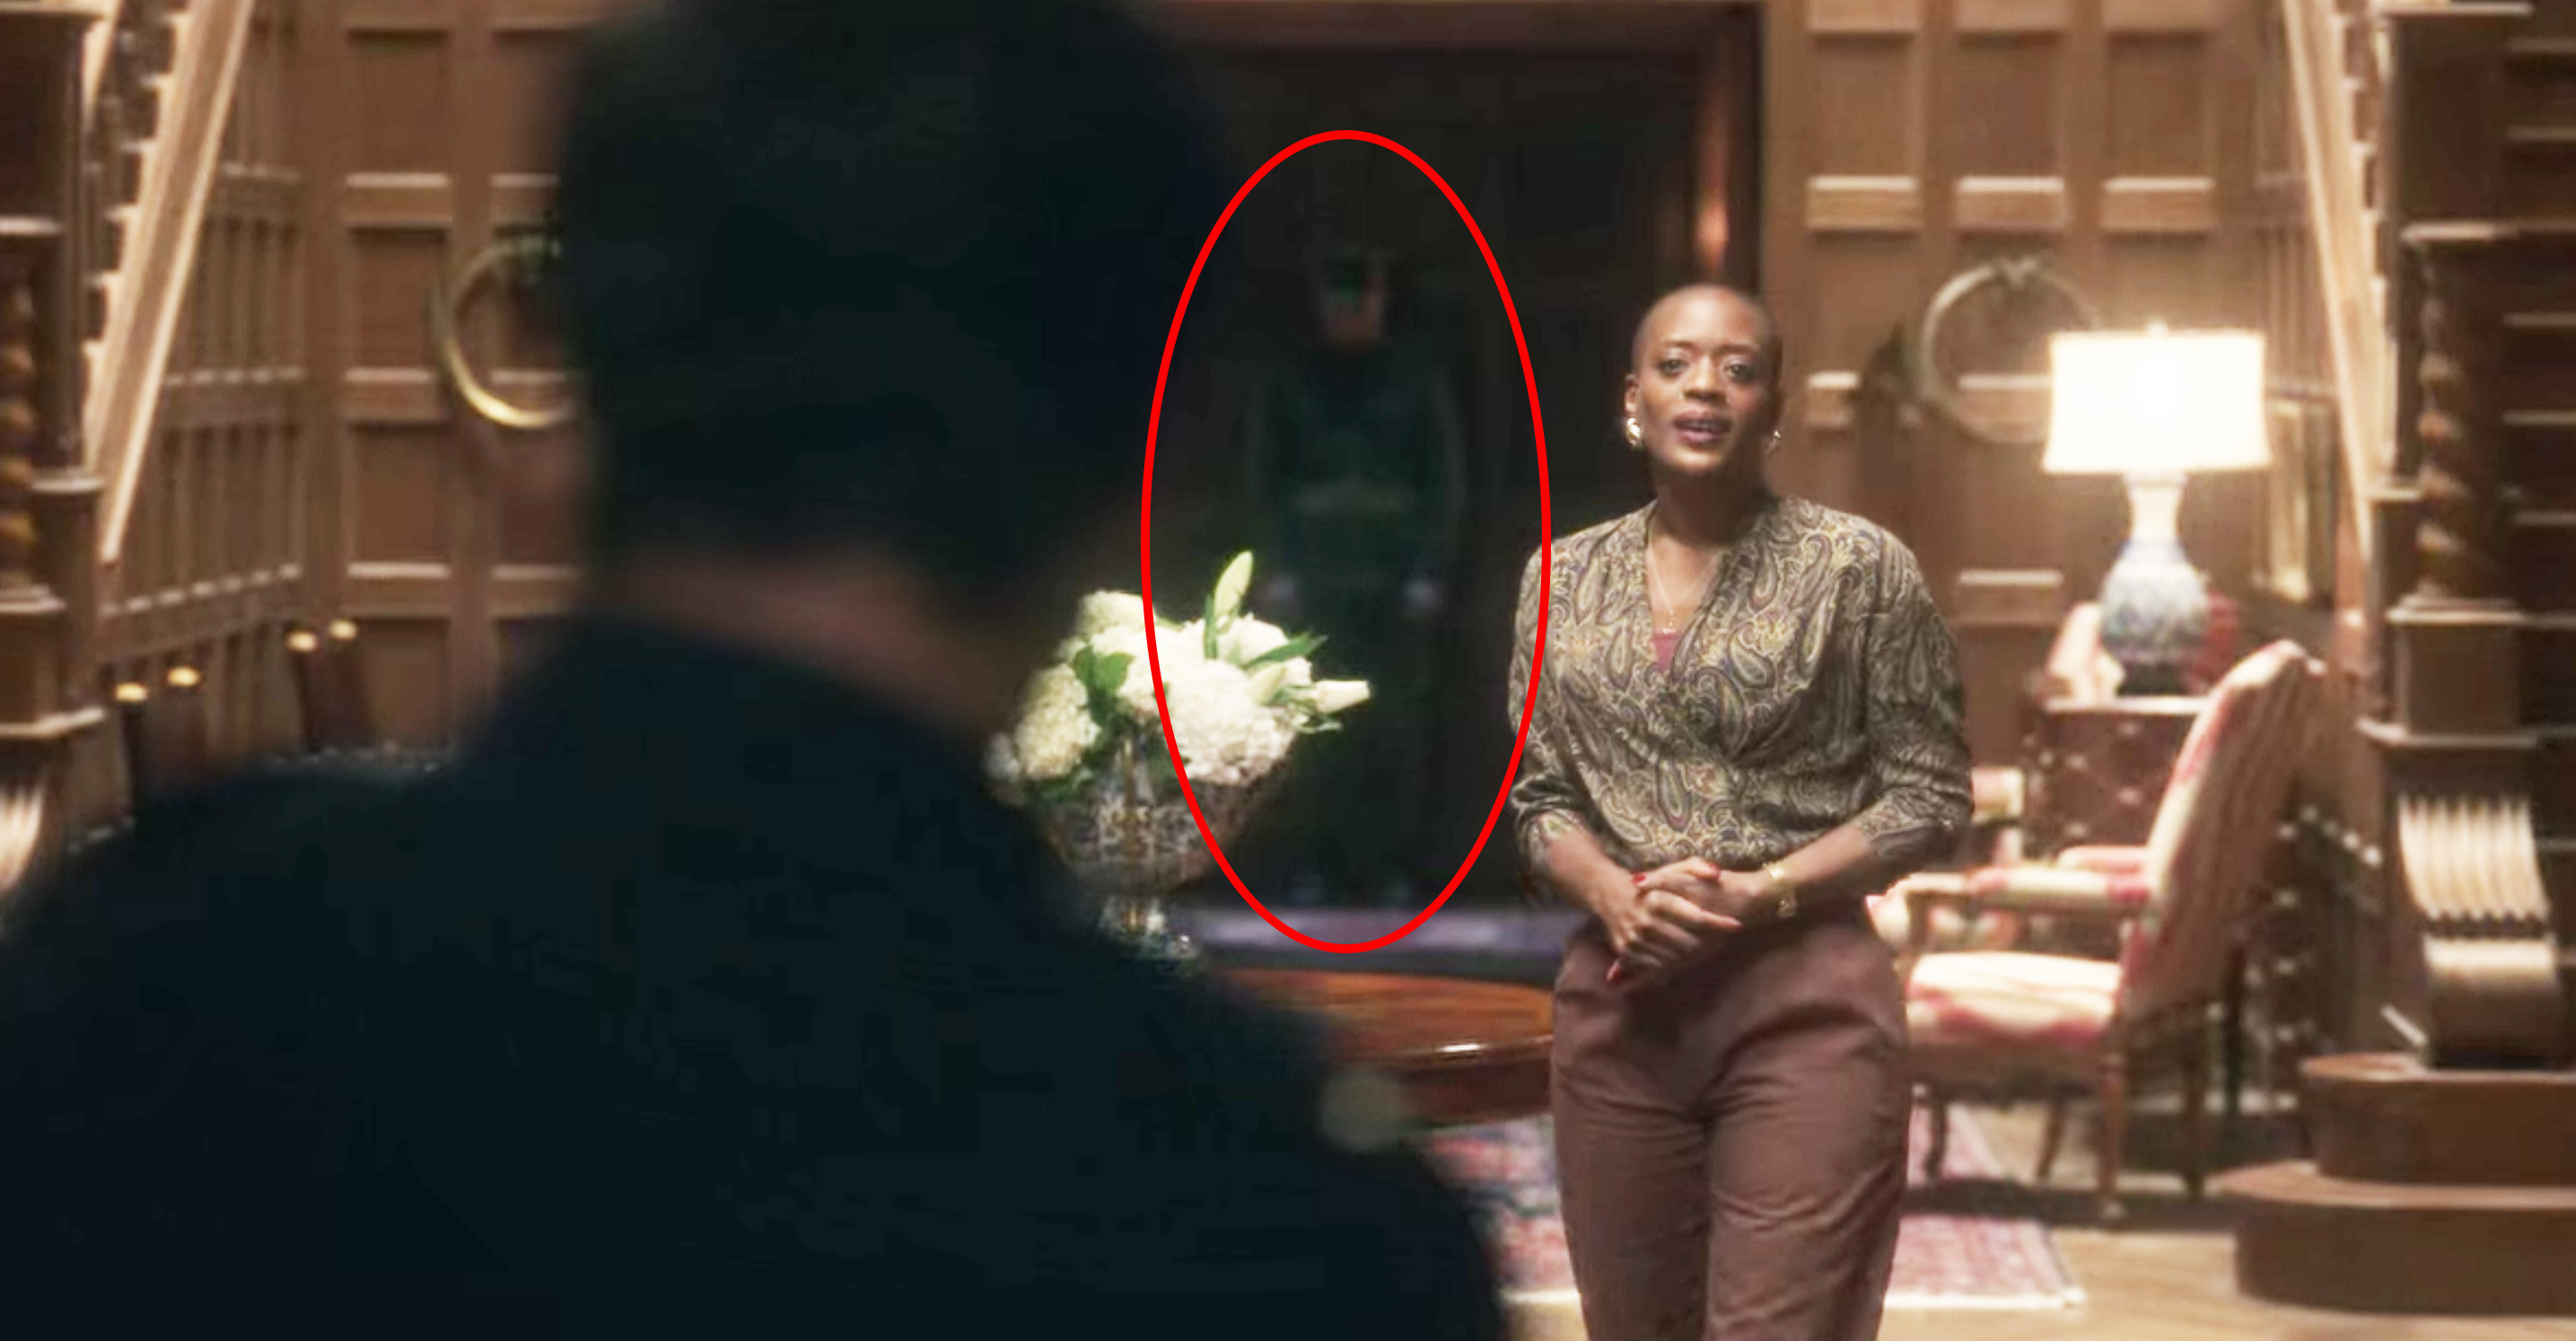 The soldier ghost standing behind Hannah